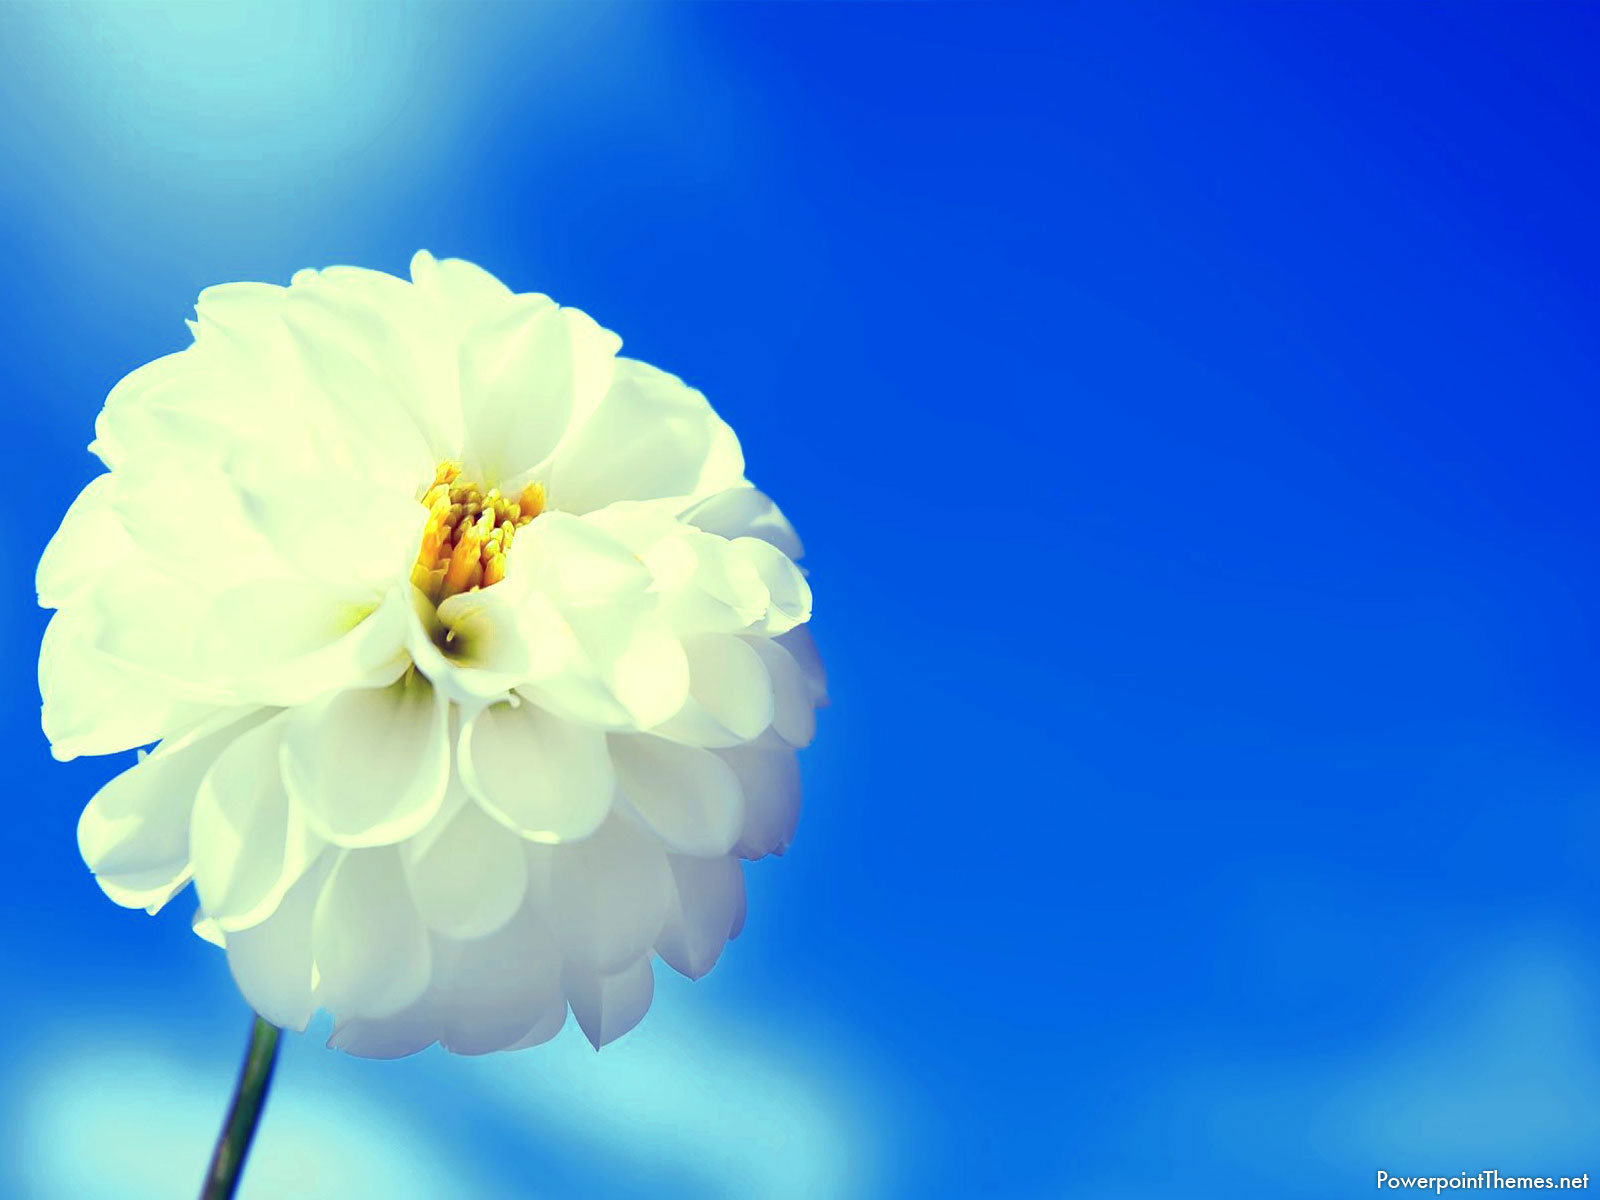 White Flower Background For Powerpoint